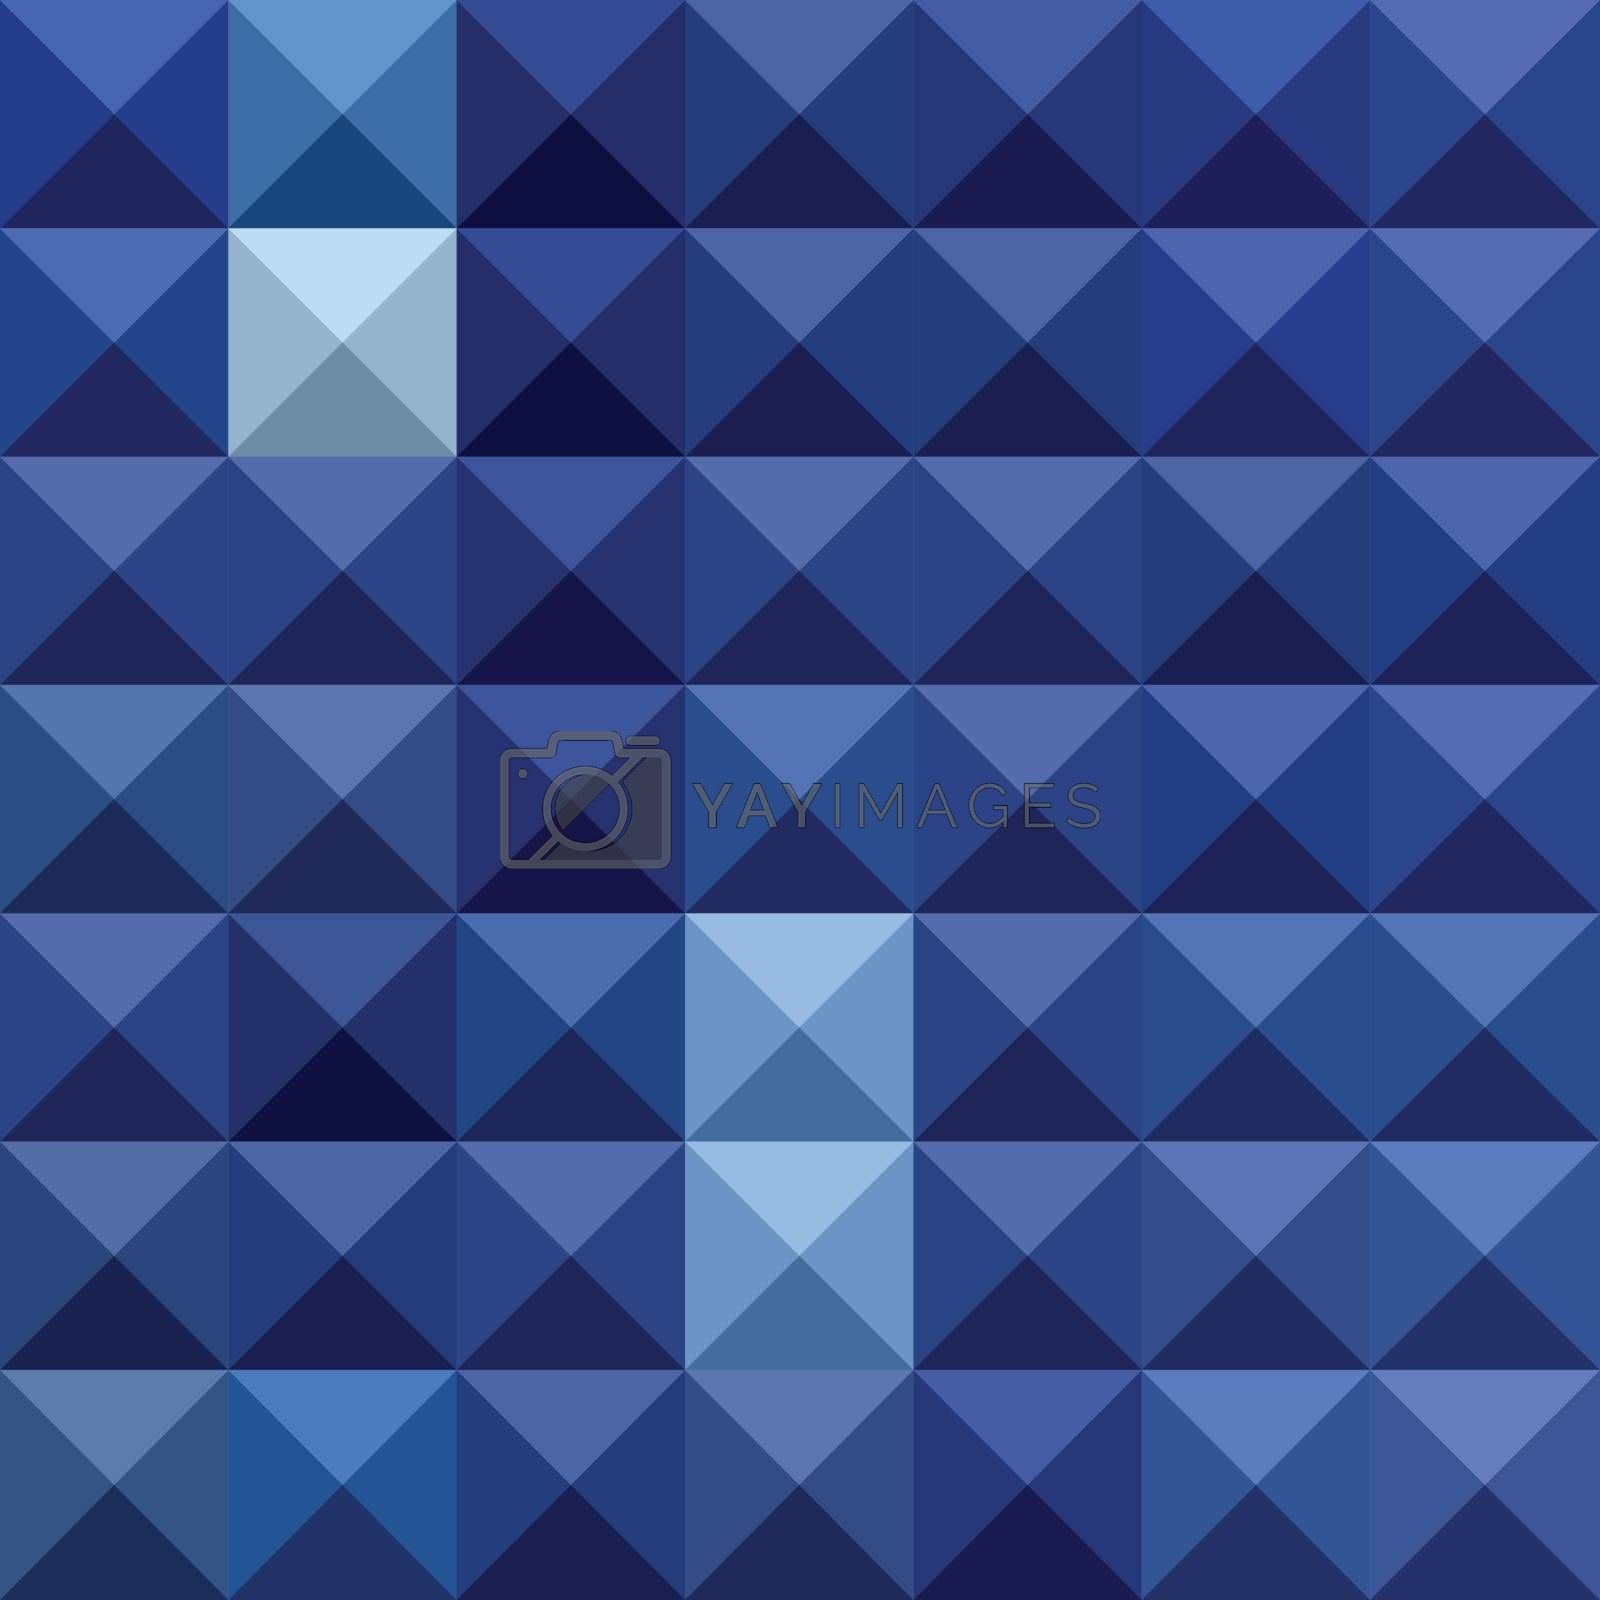 Low polygon style illustration of cobalt blue abstract geometric background.